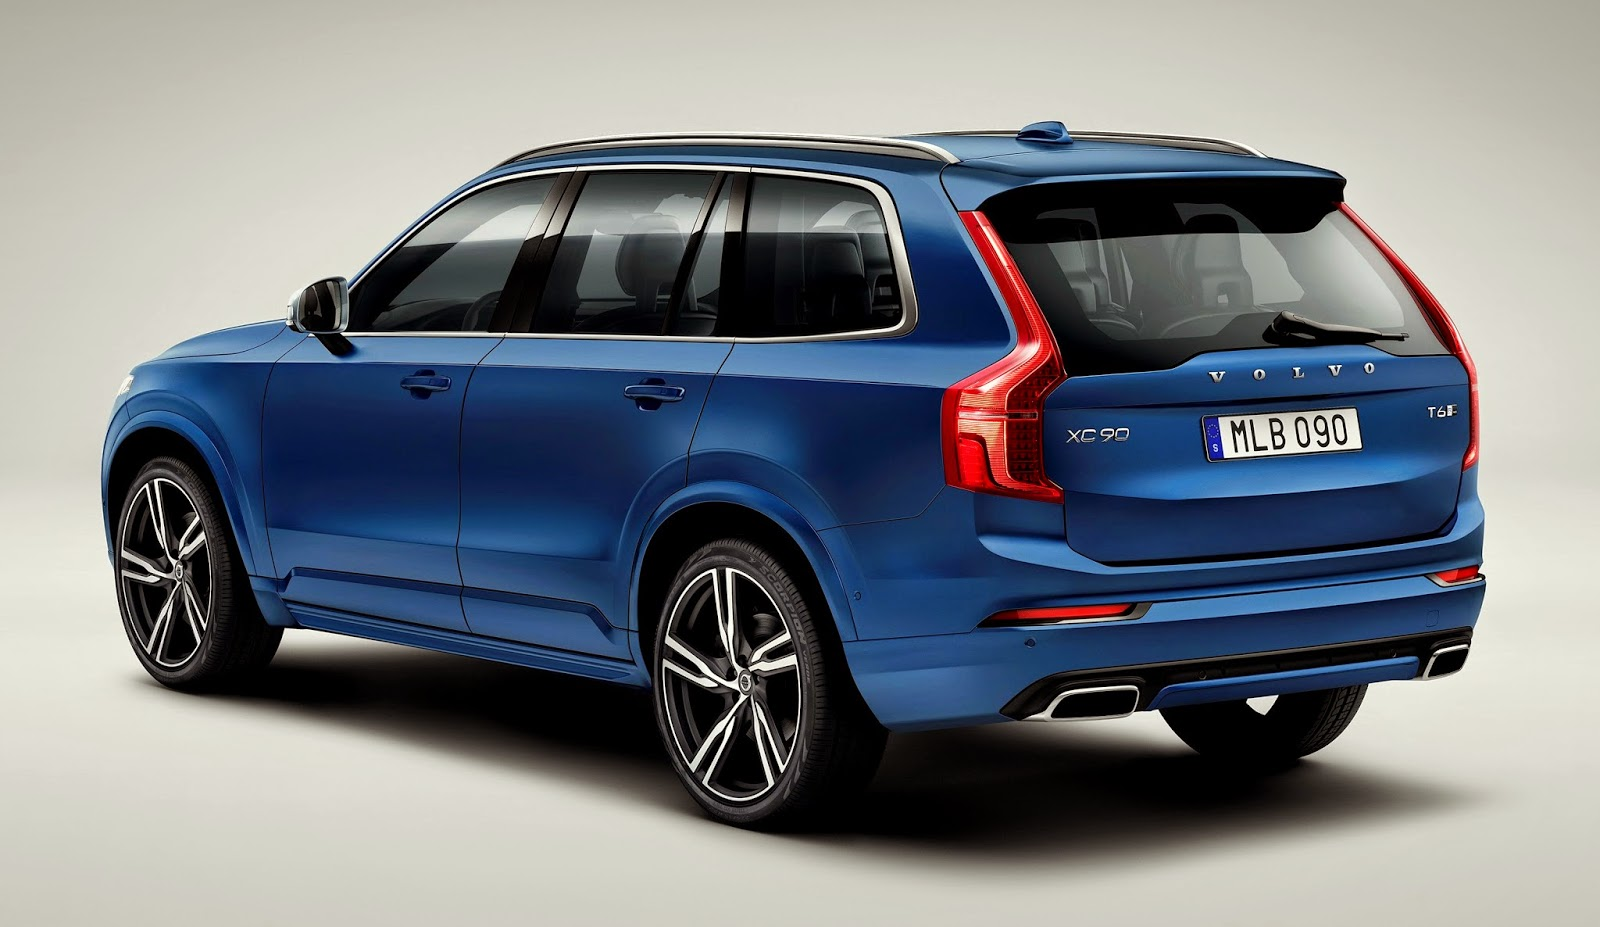 Floor mats xc90 - Source Volvo Press Release After The Read More Jump Previous Xc90 Post